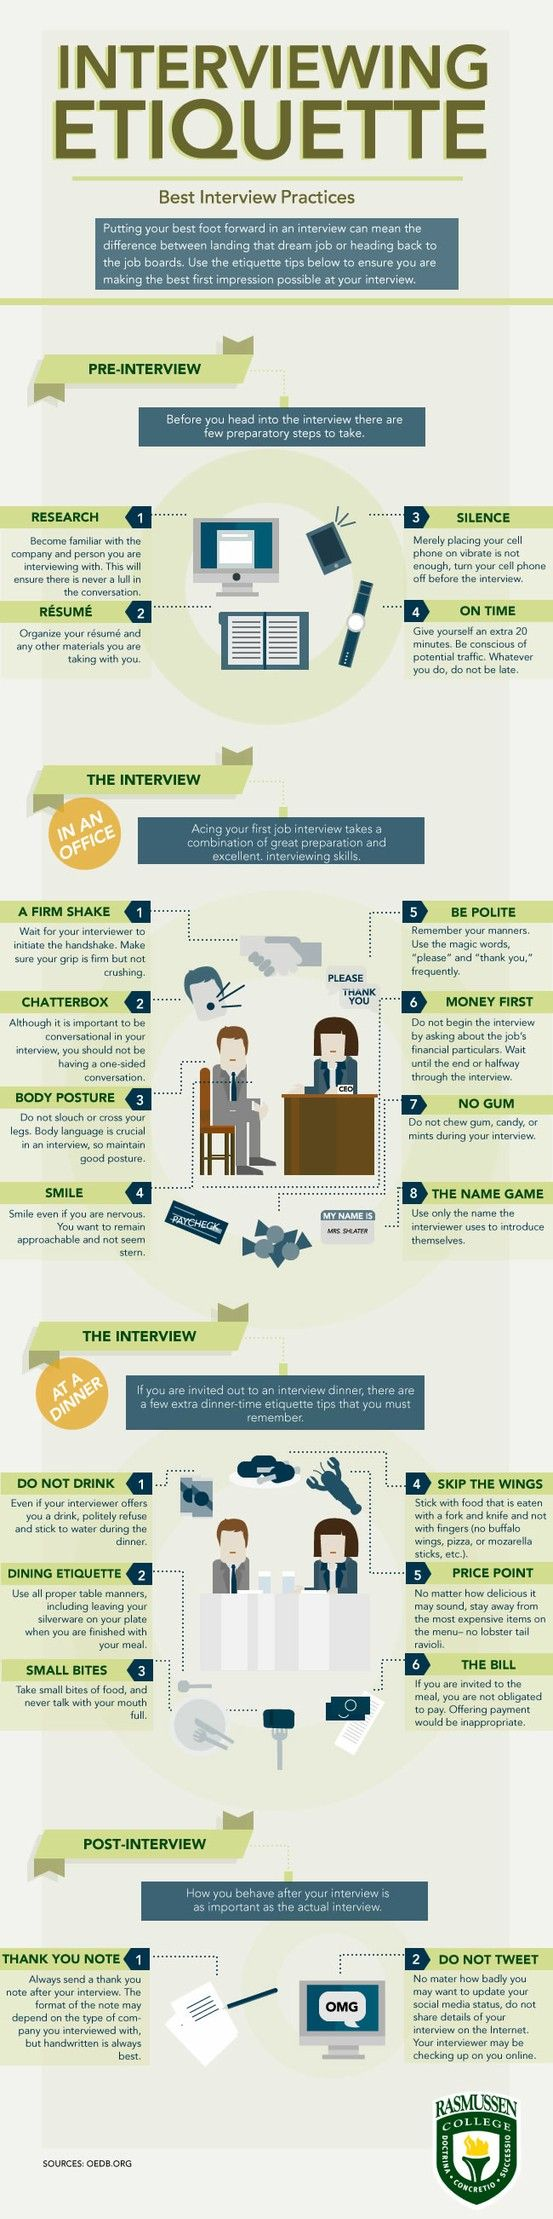 best ideas about job seeker tips resume tips some great tips on interview etiquette the last point is so important for more